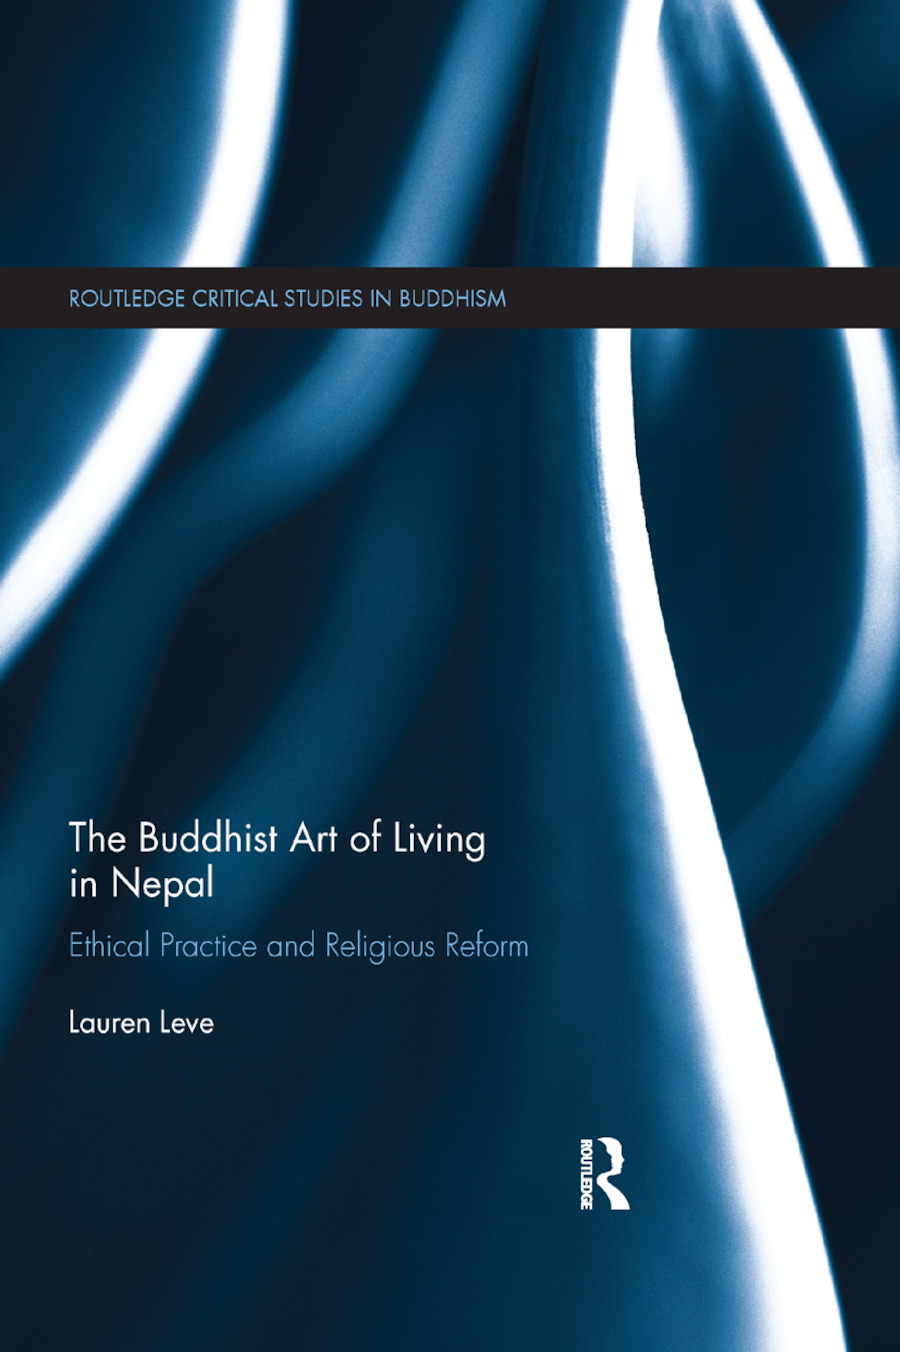 The Buddhist Art of Living in Nepal: Ethical Practice and Religious Reform book cover